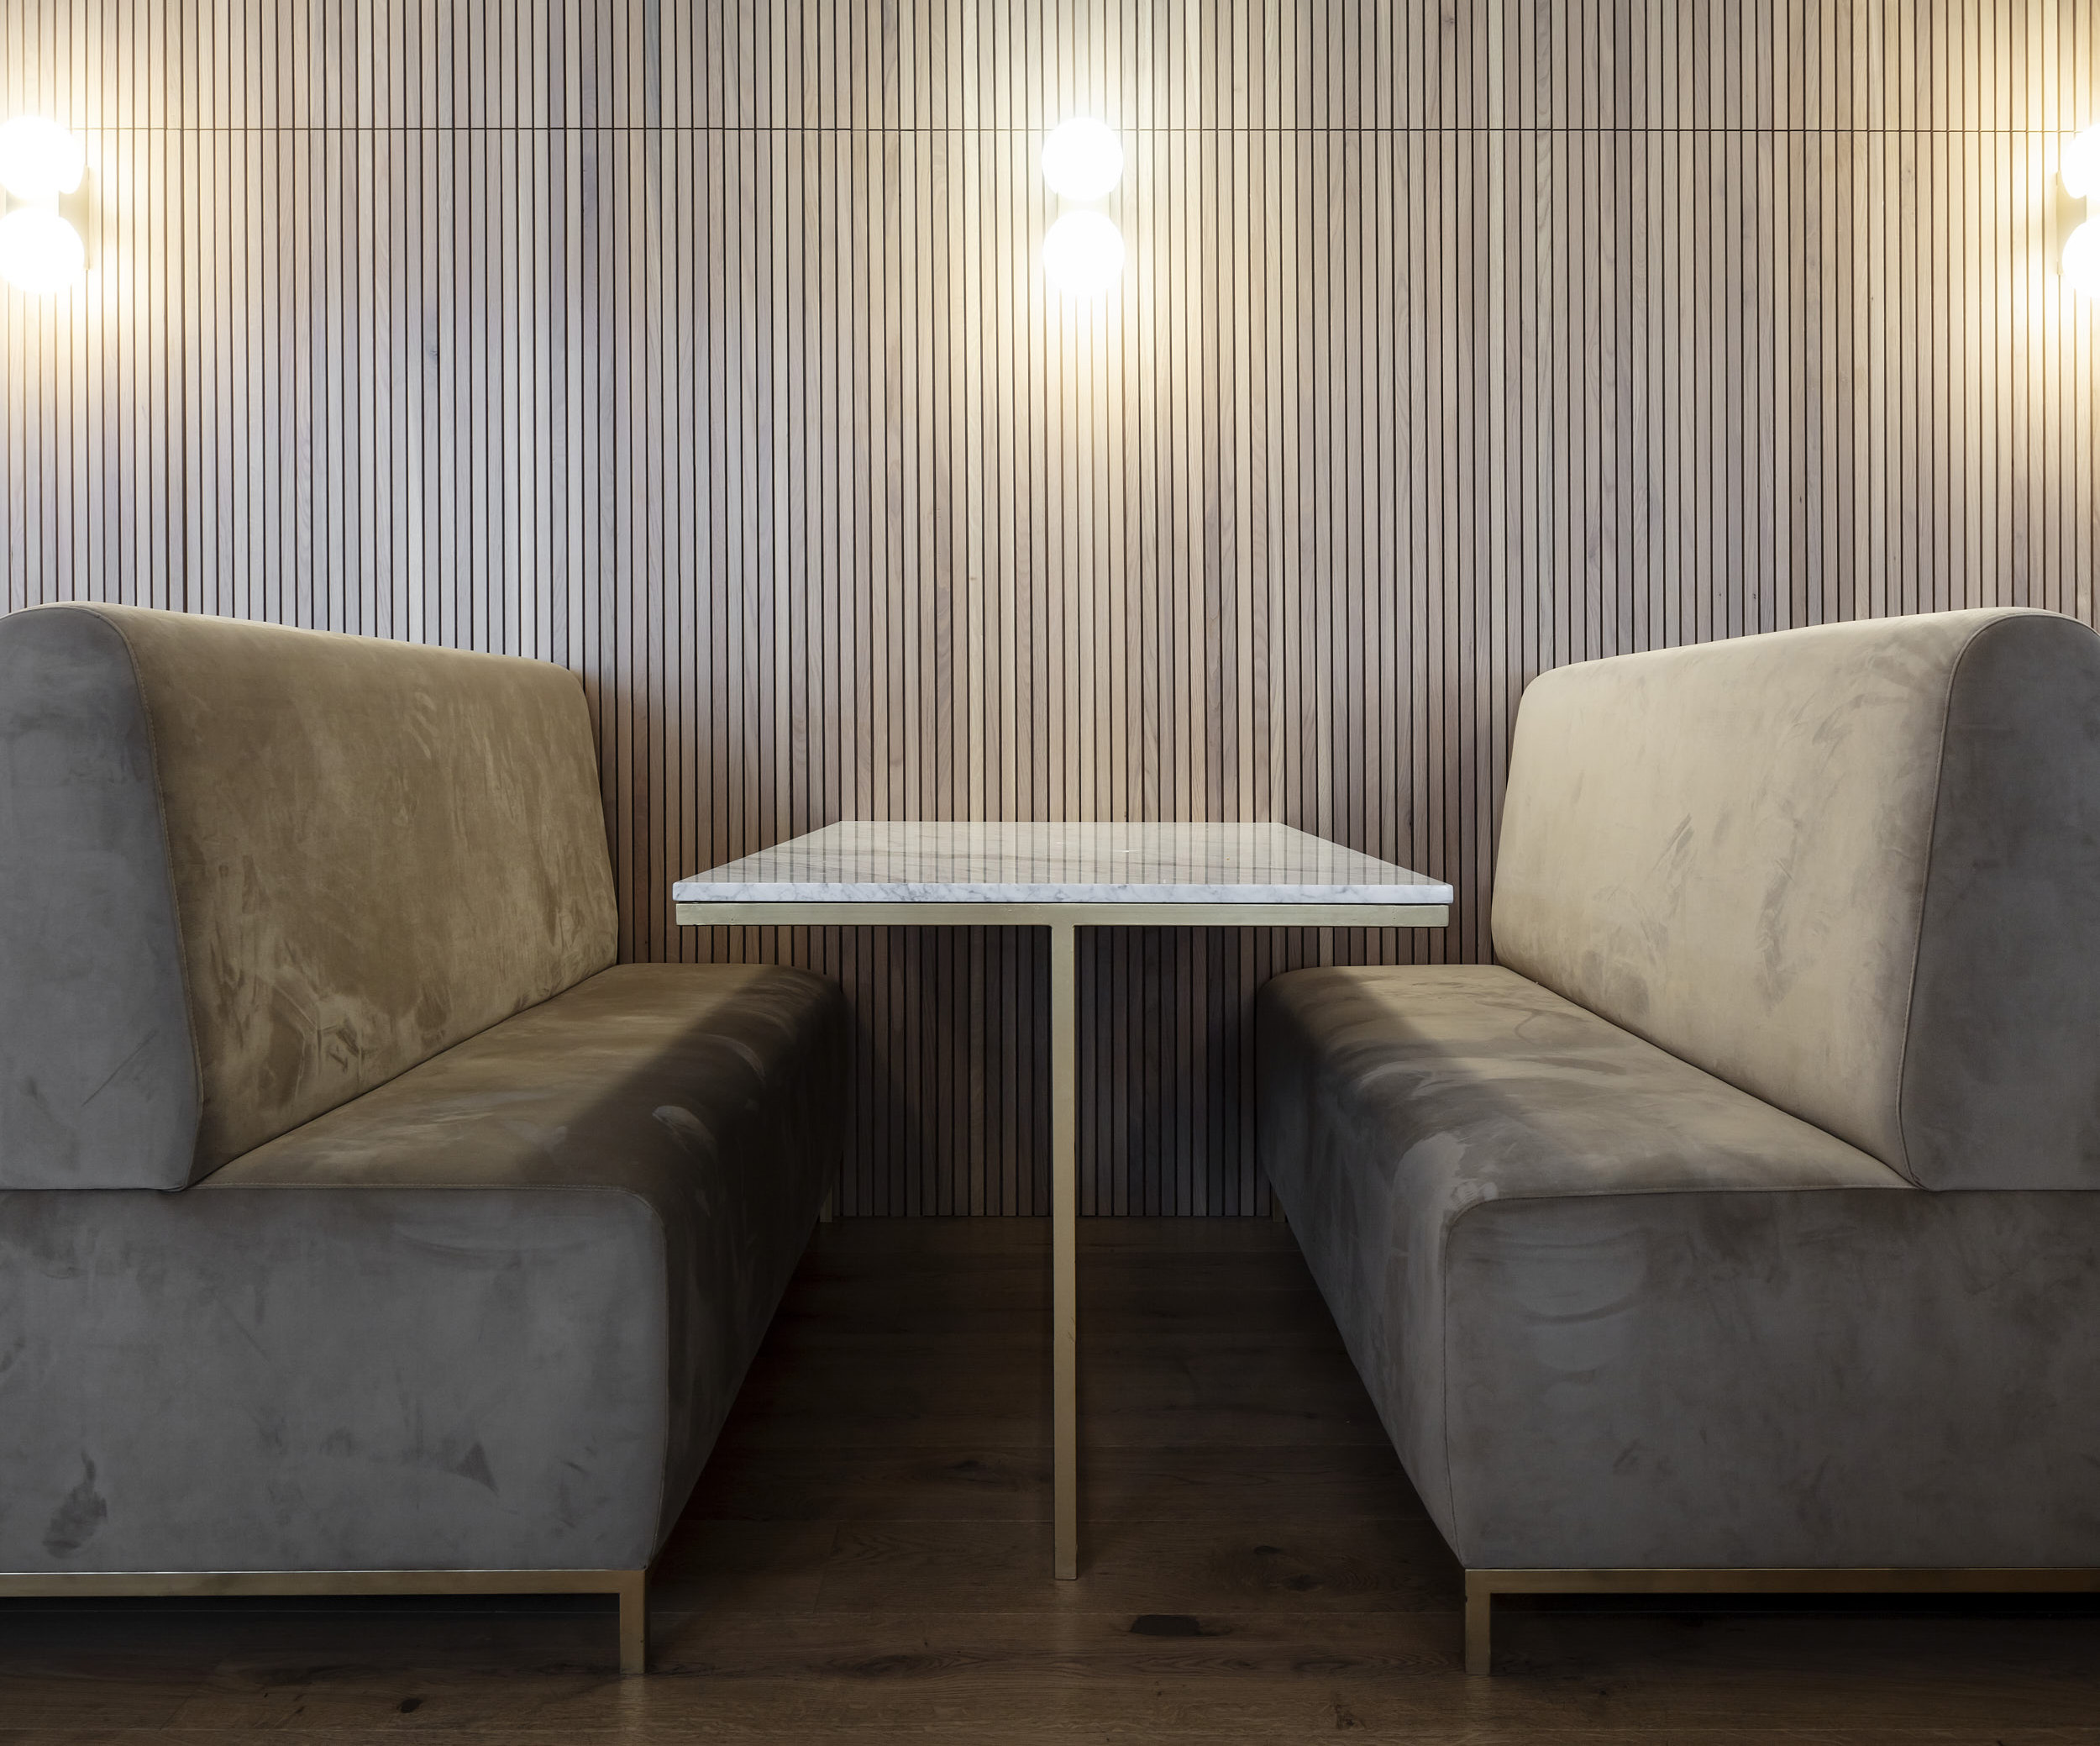 Banquette seating features custom furniture and timber wall-cladding.